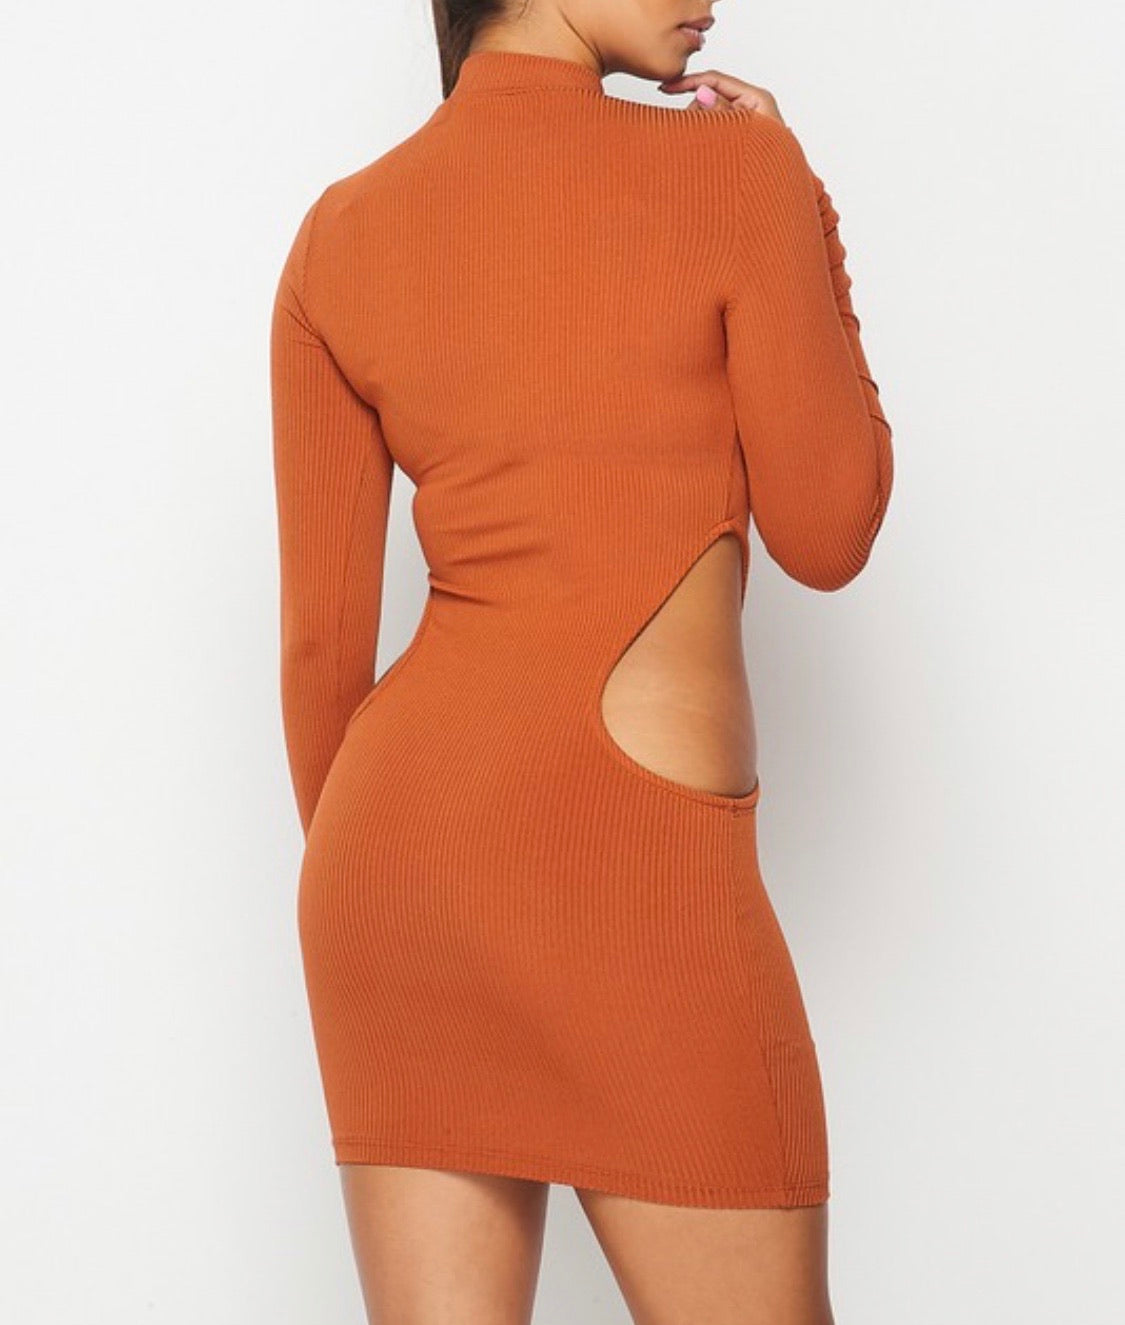 IN THIS IMAGE YOU CAN SEE A YOUNG WOMAN WEARING A  FULLSLEEVES MINI DRESS. THE DRESS FEATURES Cut Out Detail. IT IS A  Bodycon Mini Full Sleeves Dress.